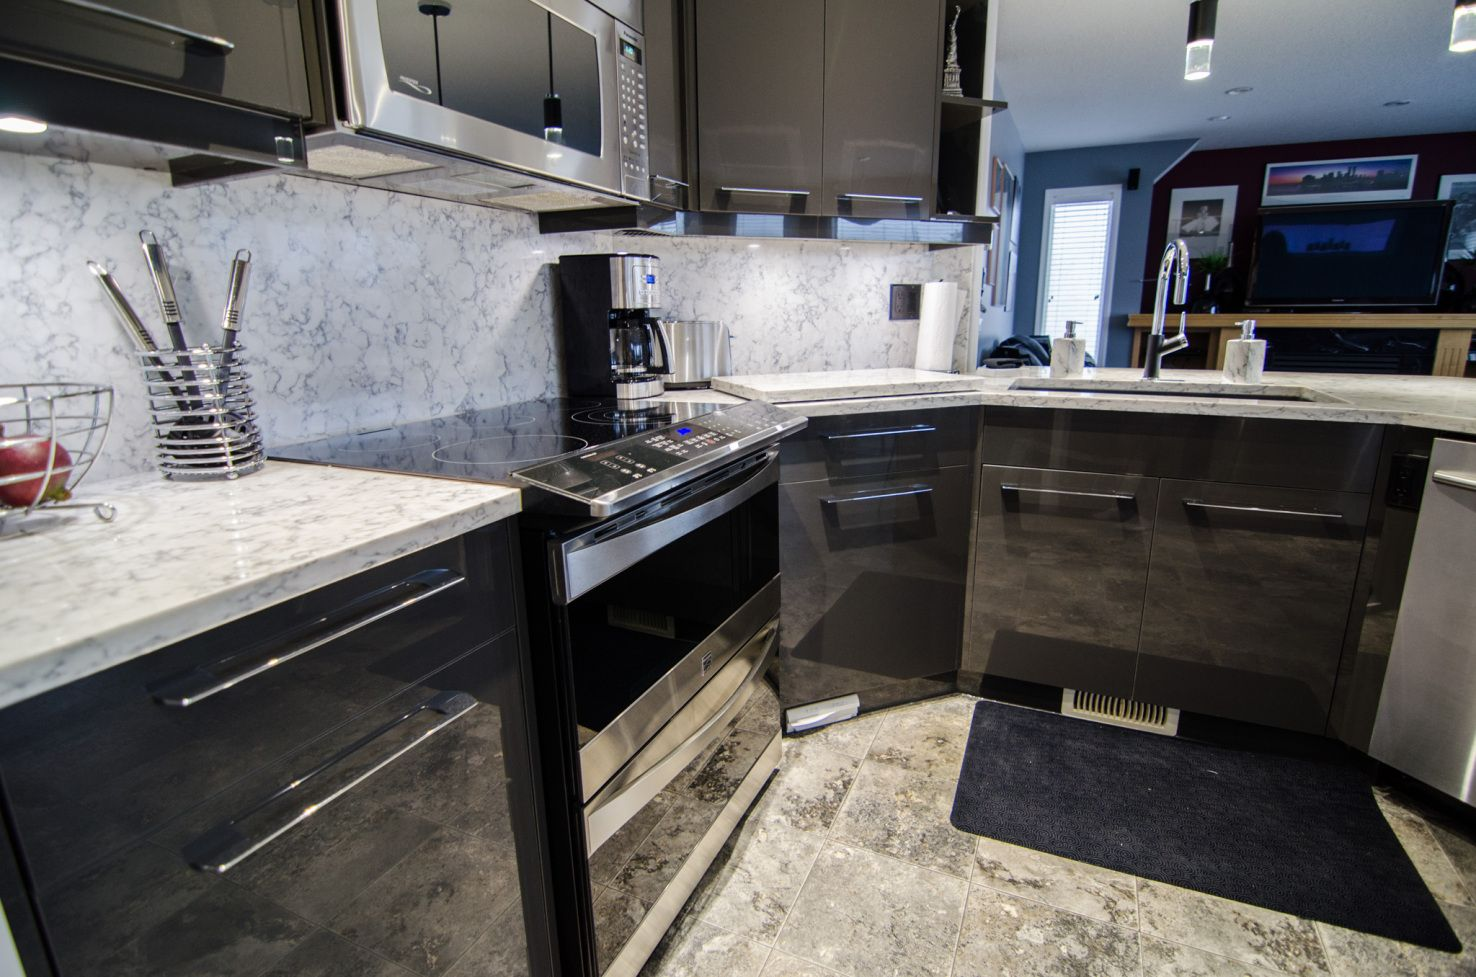 2018 Denver Granite Countertops   Small Kitchen Island Ideas With Seating  Check More At Http: